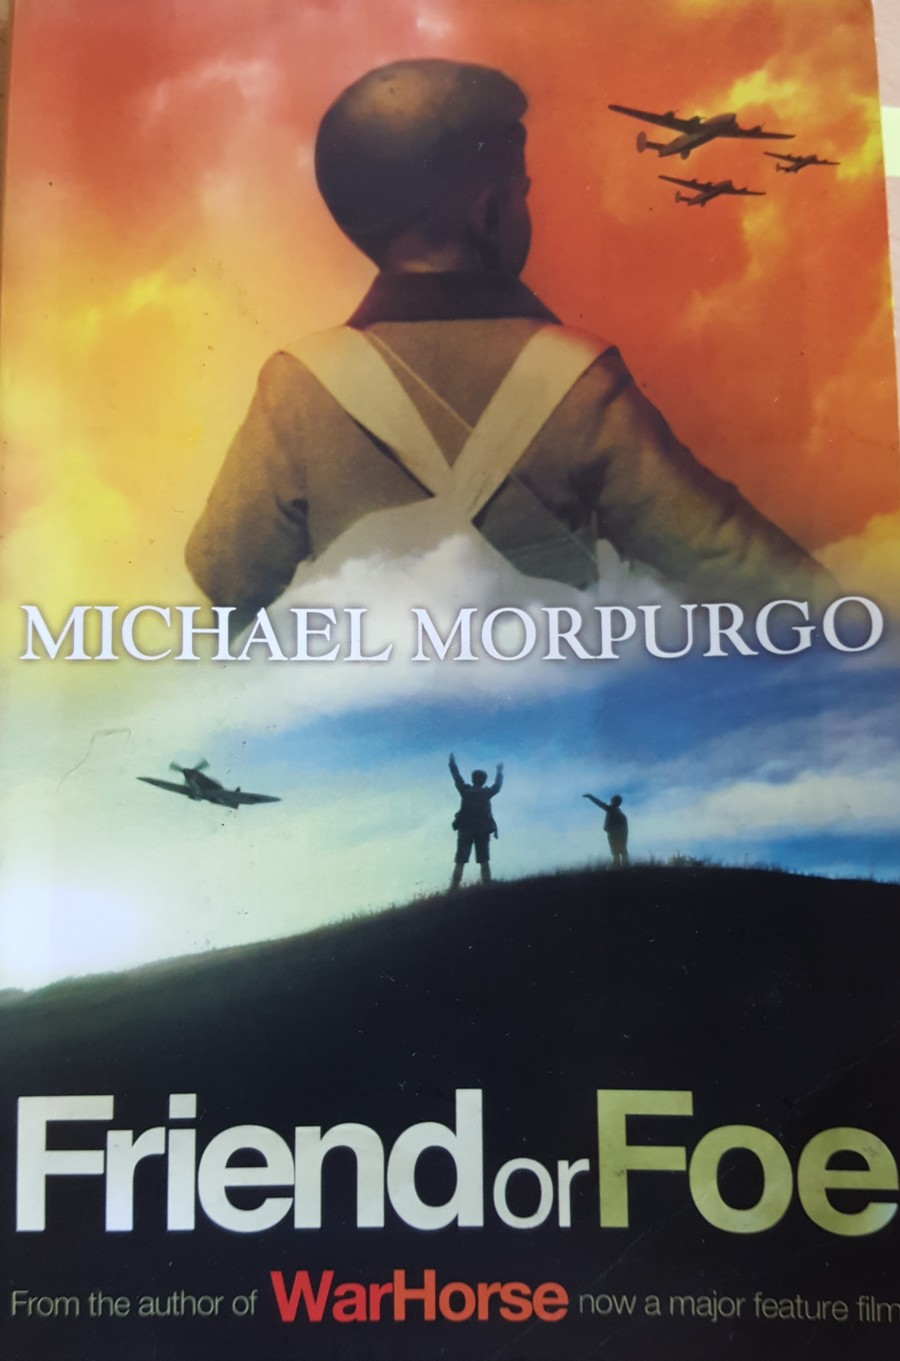 Our class novel for this half term is Morpurgo's 'Friend or Foe', set during WW2, and following the evacuation of David from London to Devon.